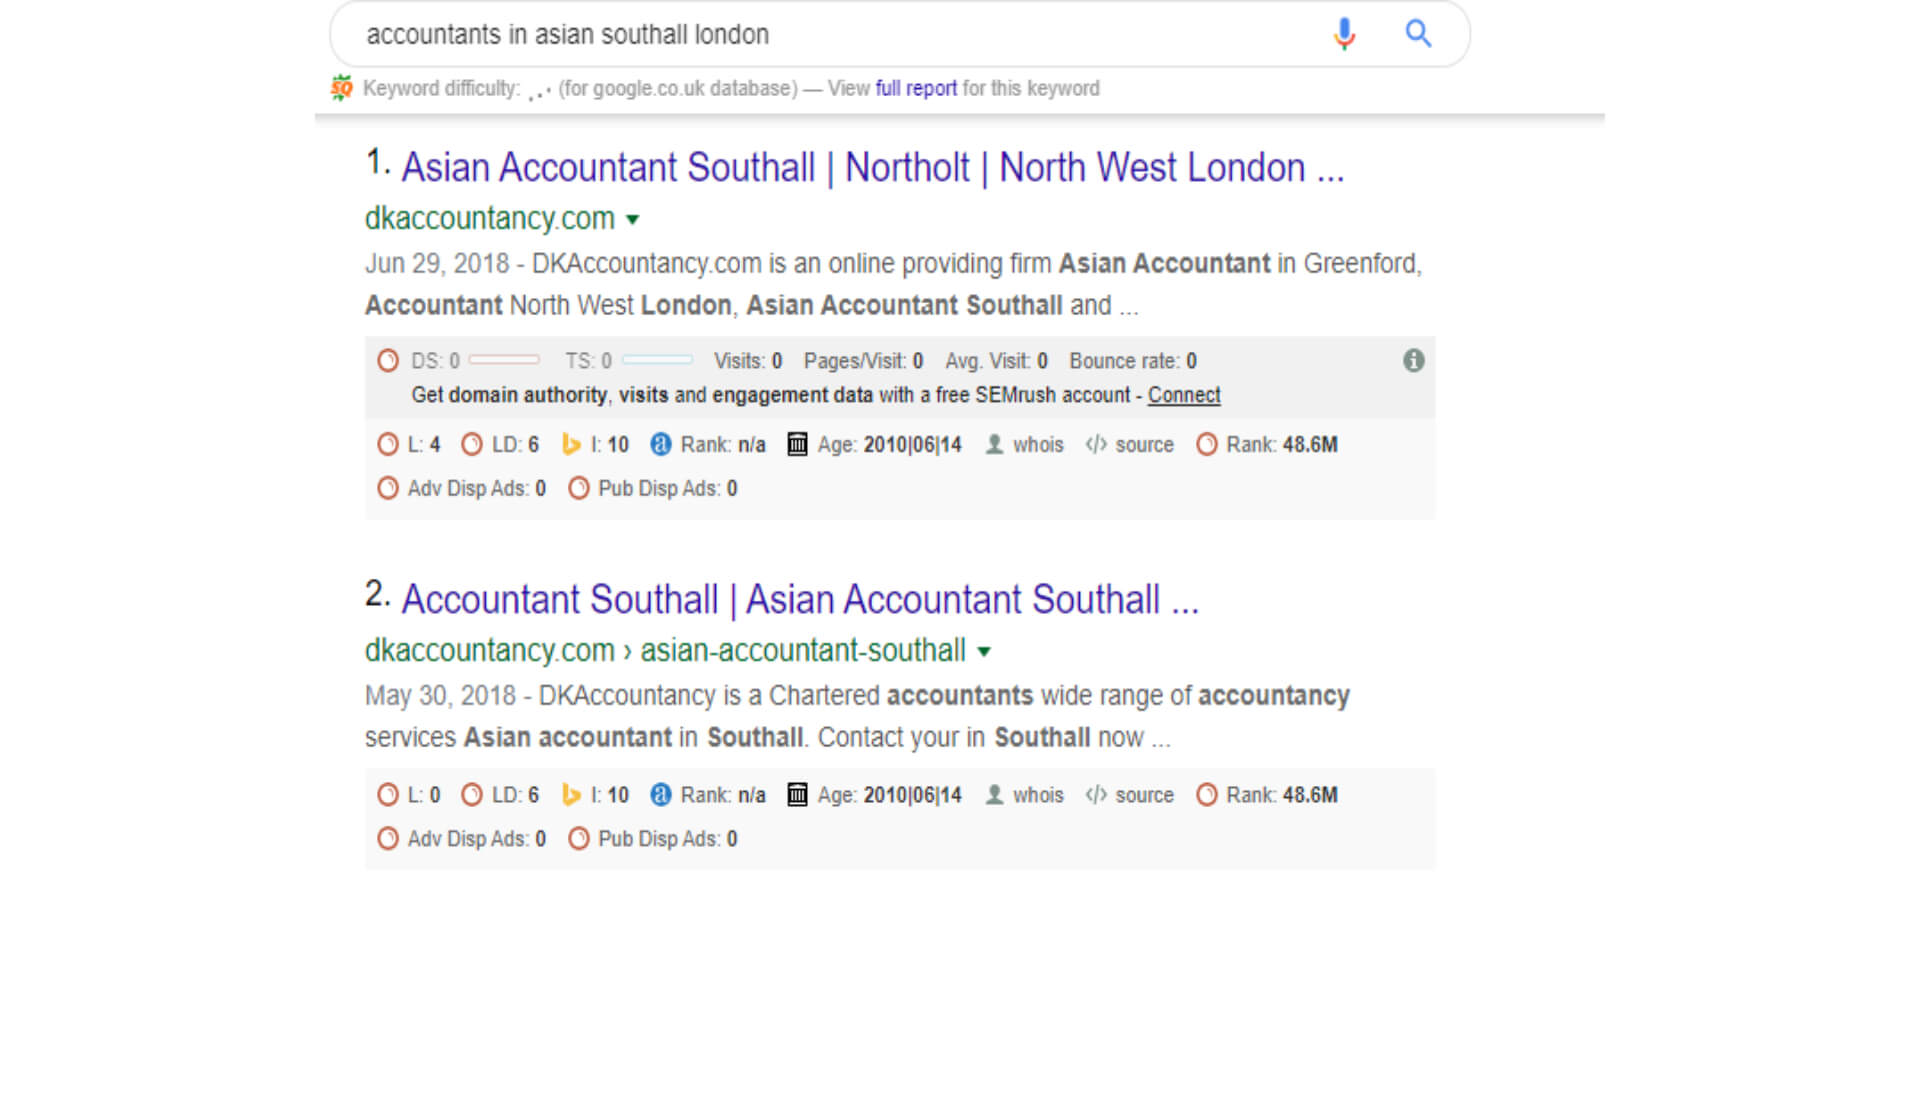 accountants in asian southall london